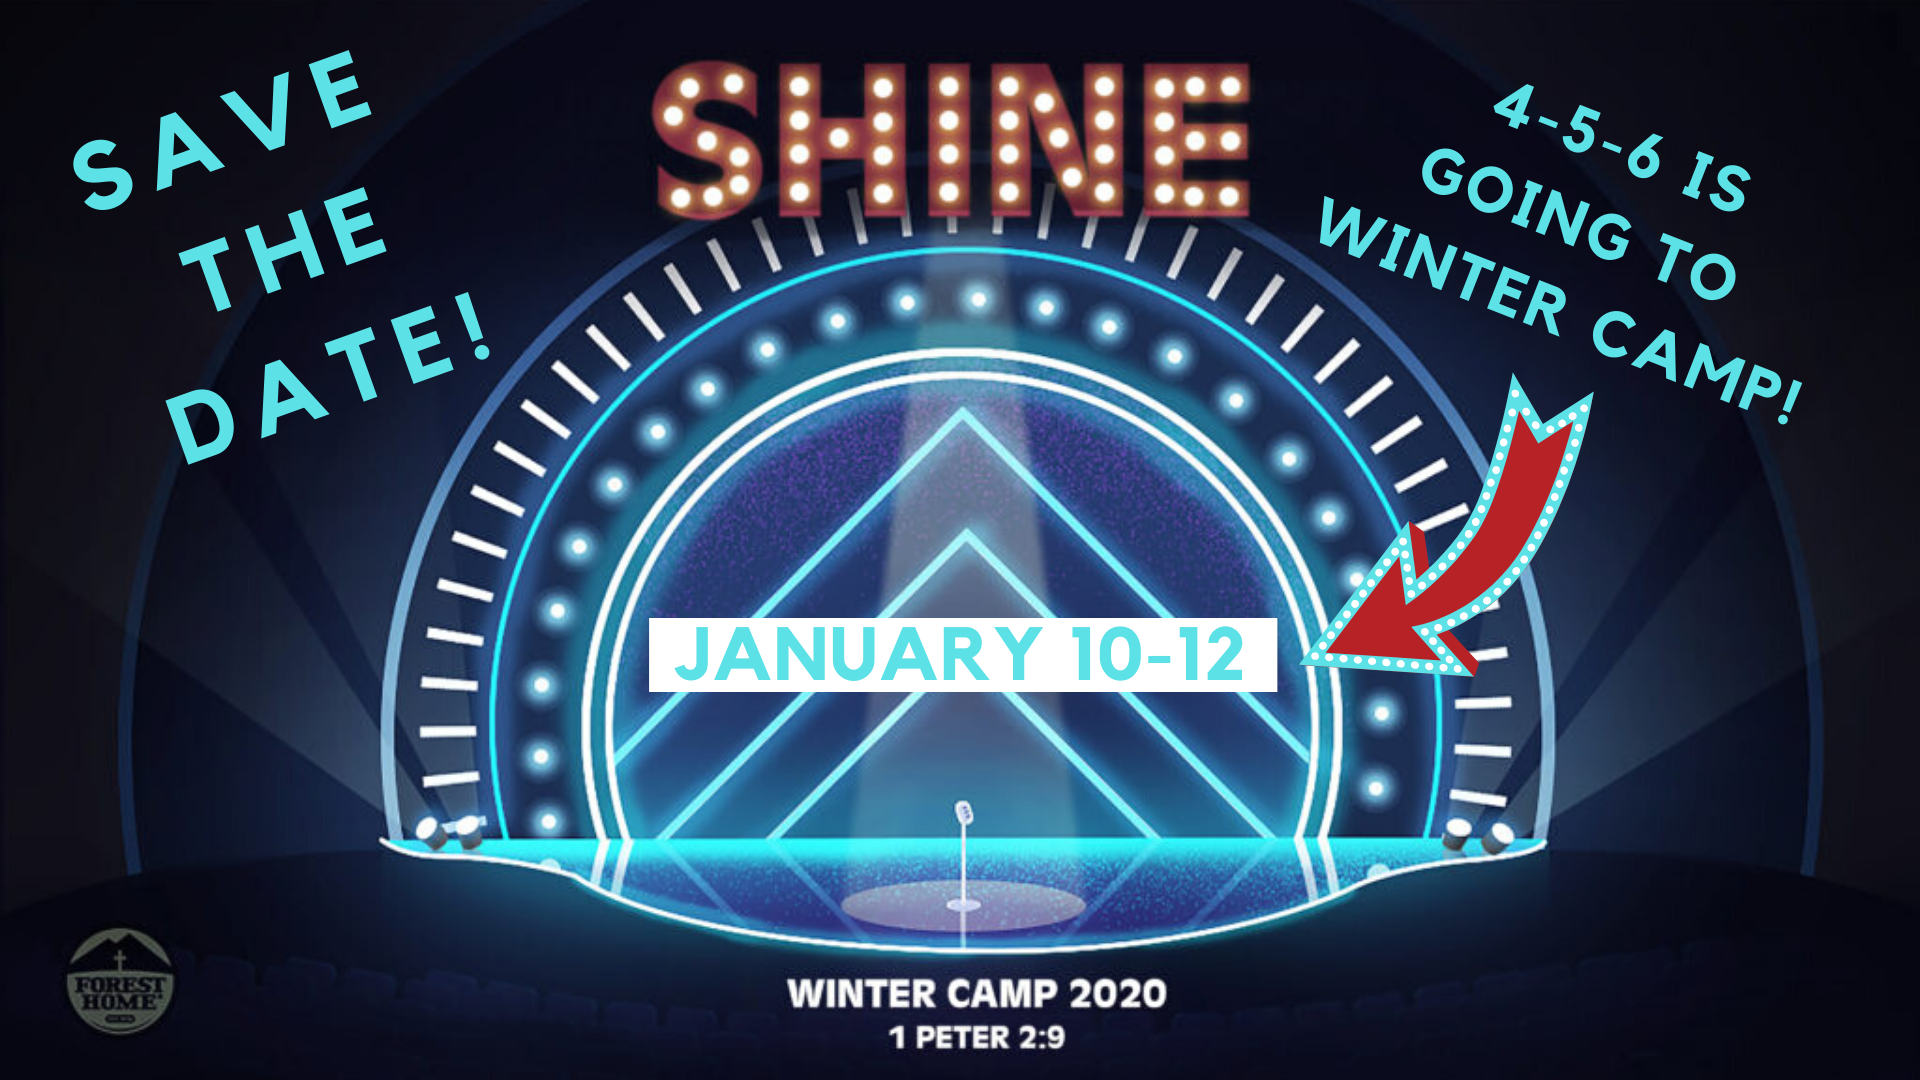 4-5-6 Winter Camp image